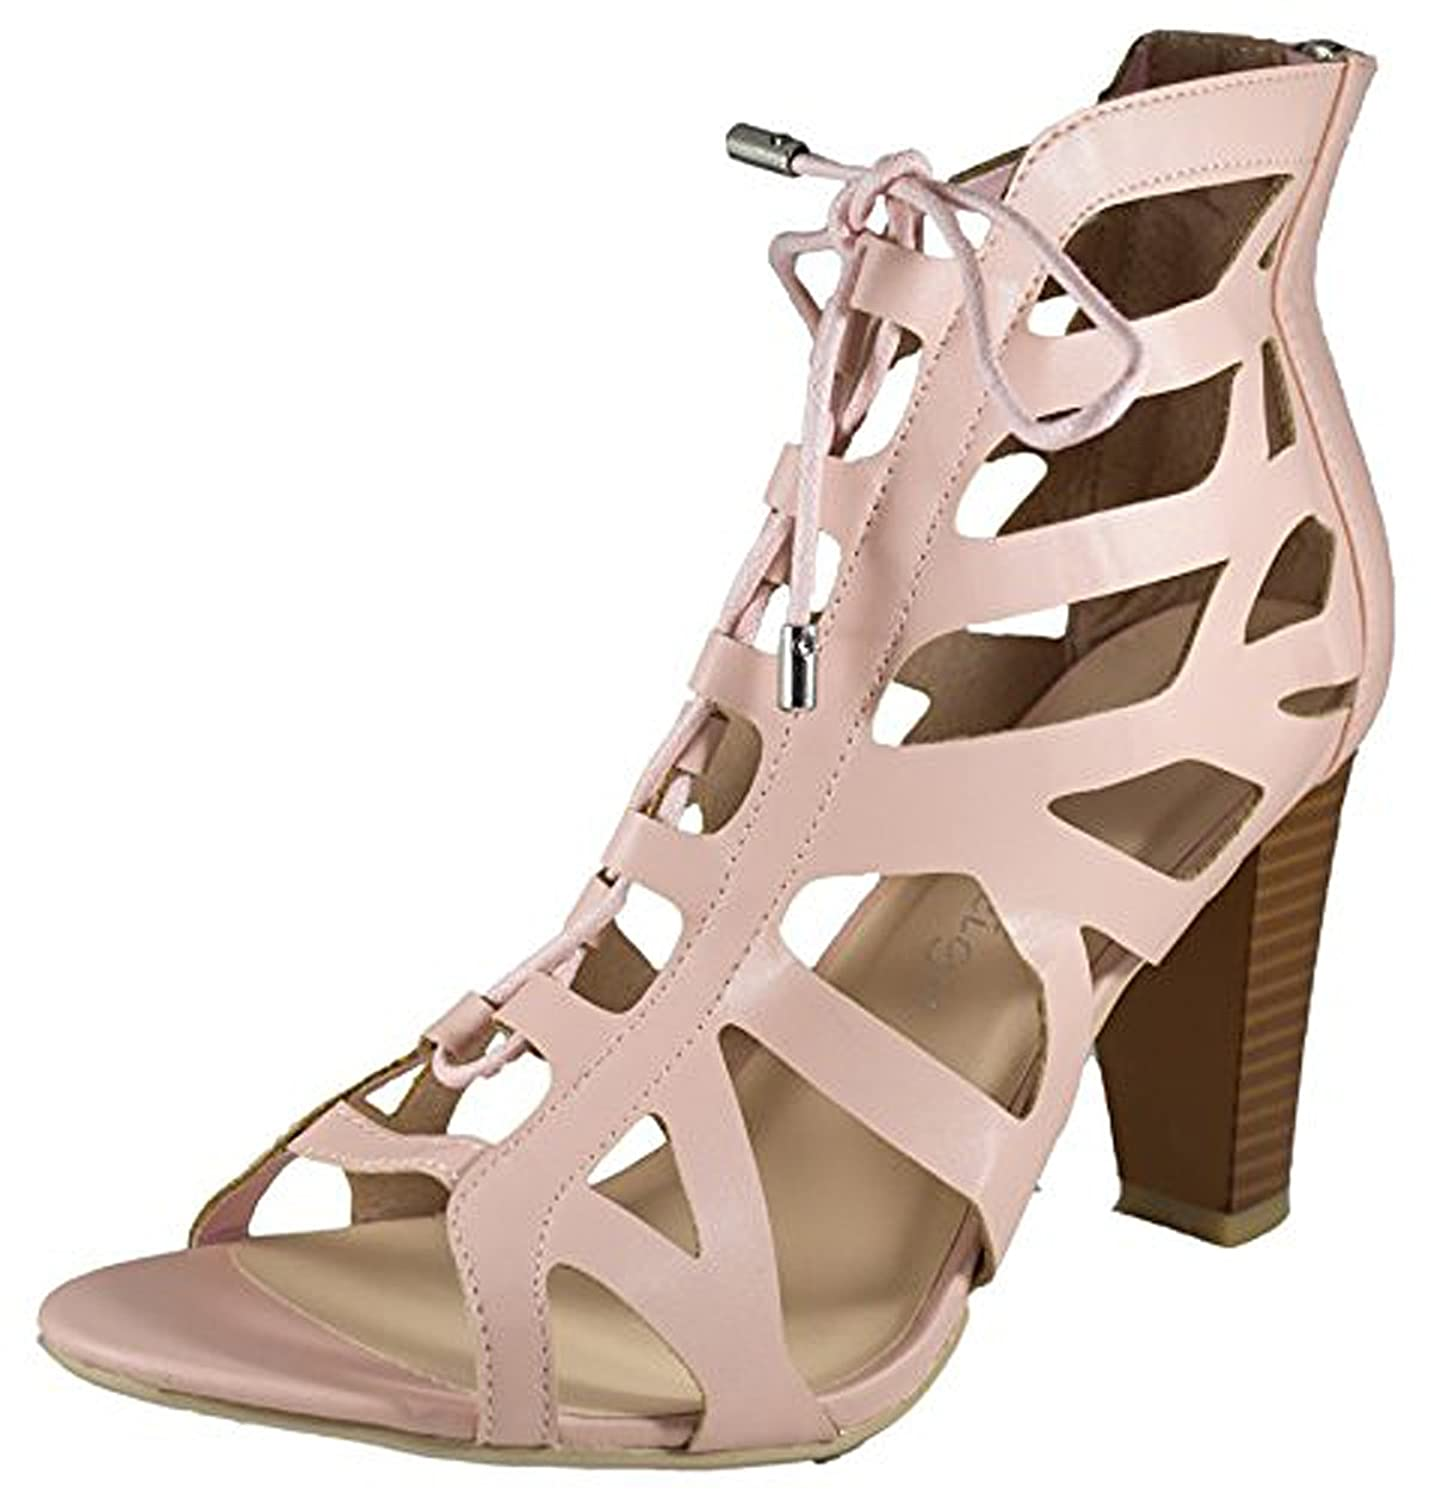 Womens sandals in wide width - Free Reign Women S Cut Out Lace Up Ghille Bootie Heel Sandal Wide Width